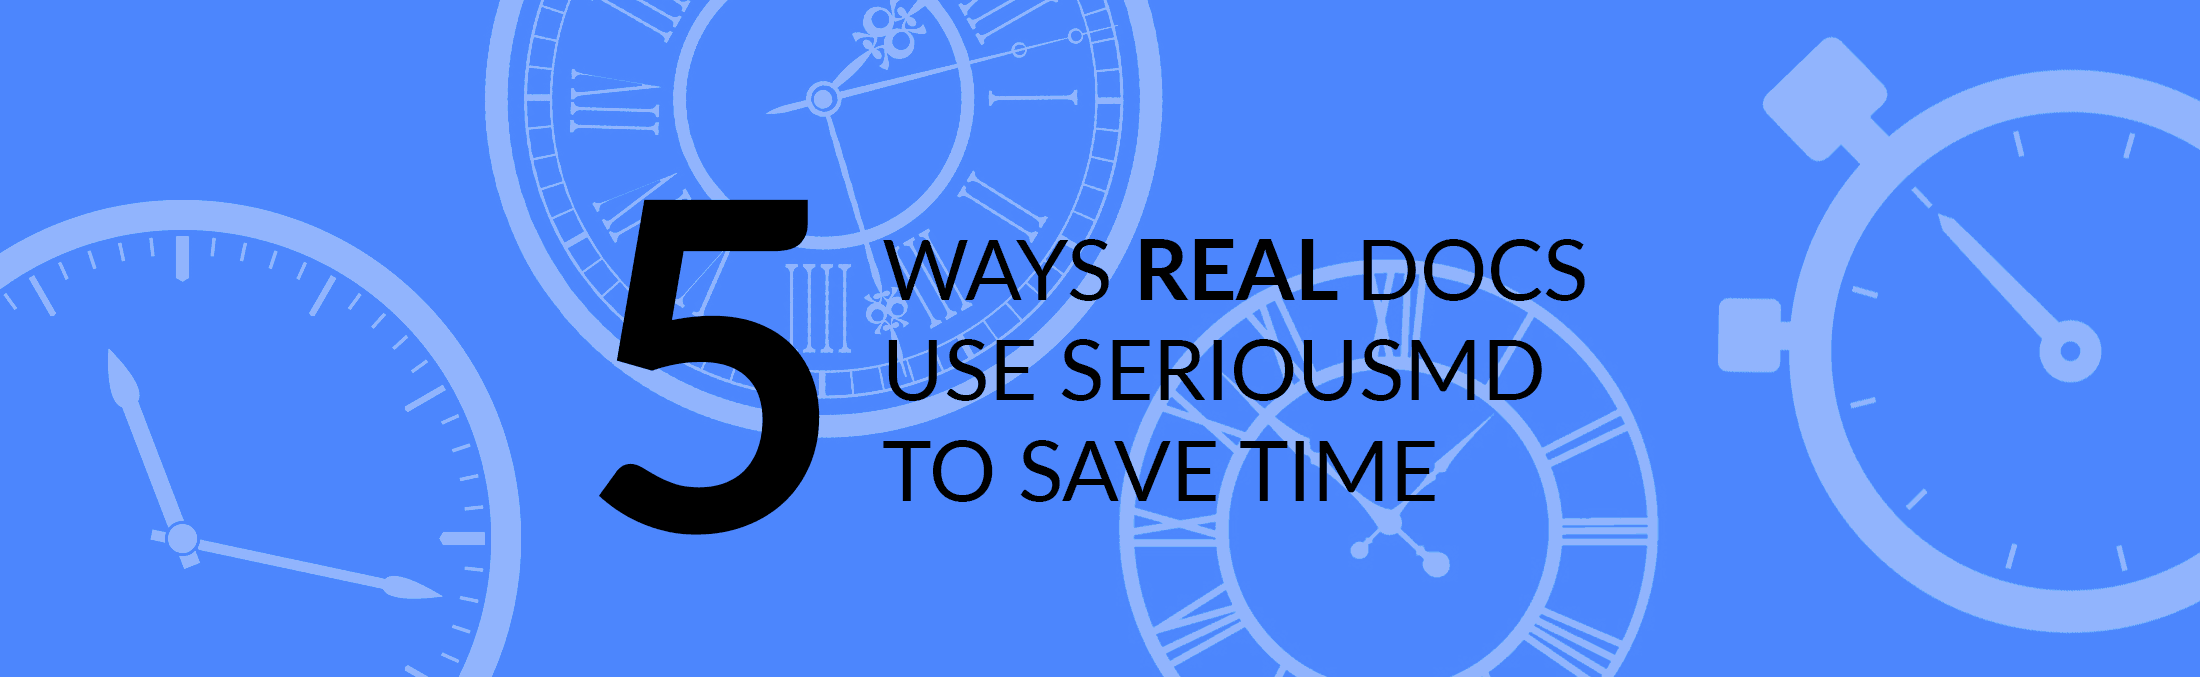 ways docs use seriousmd to save time